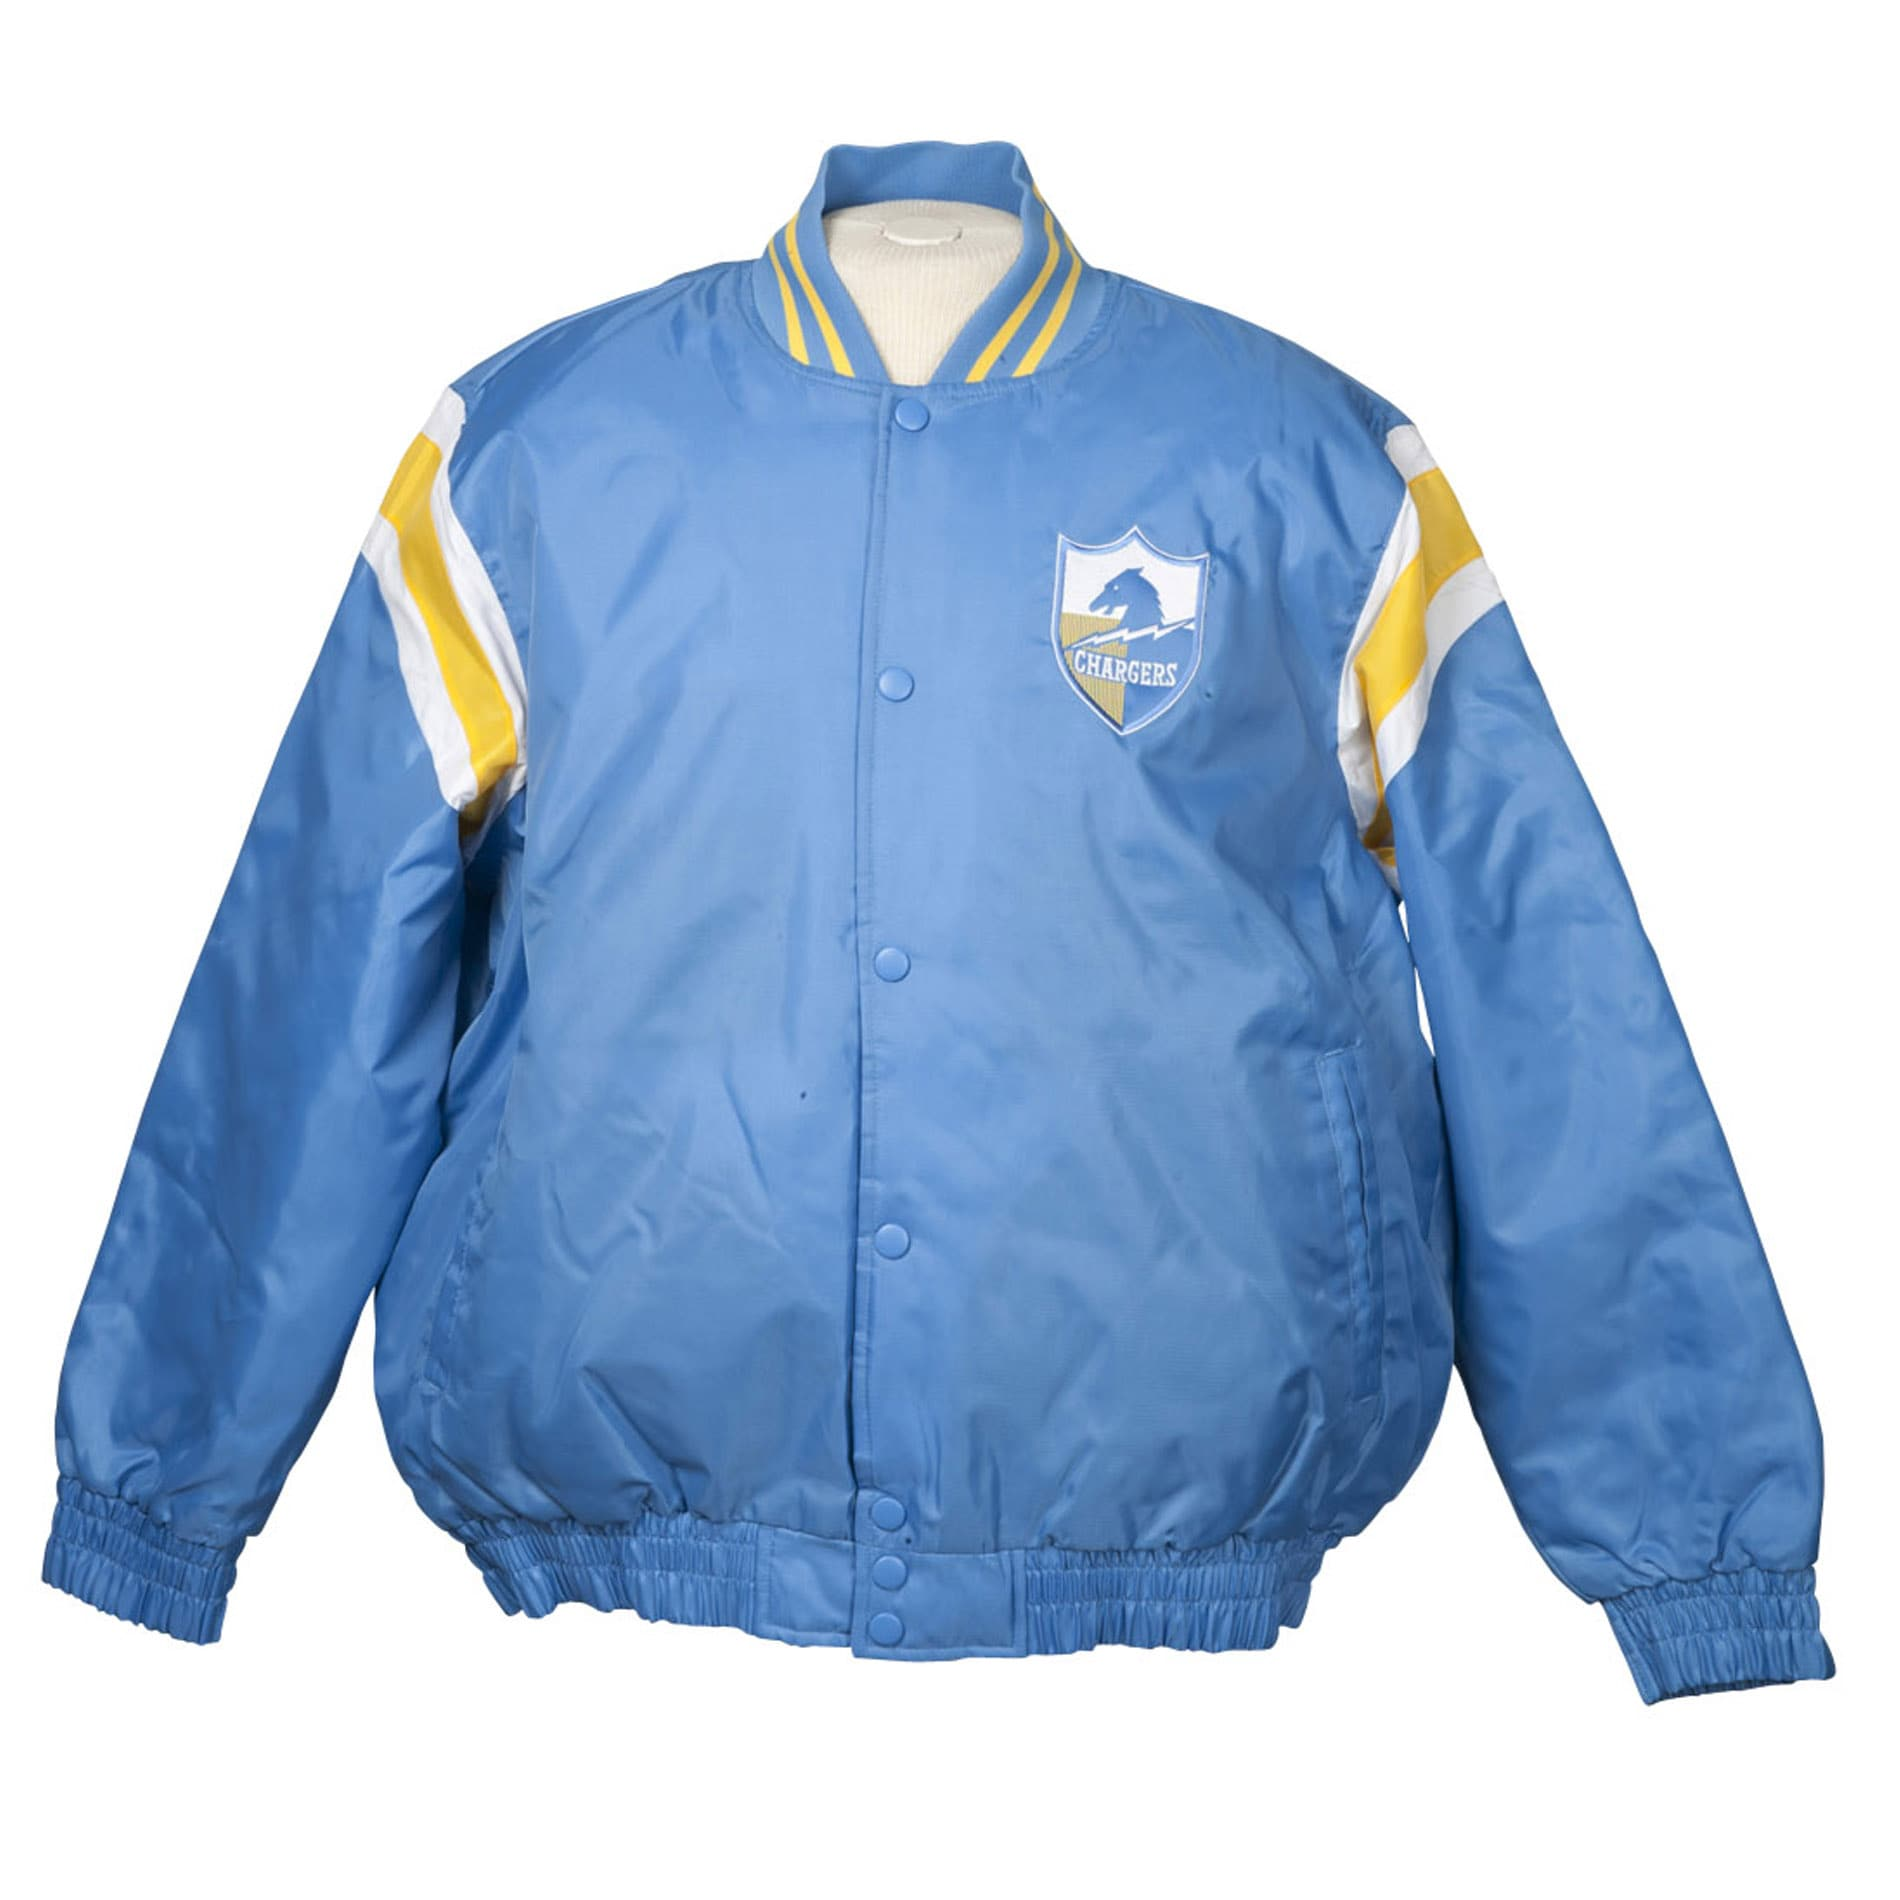 San Diego Chargers Heavy Weight Throwback Winter Jacket